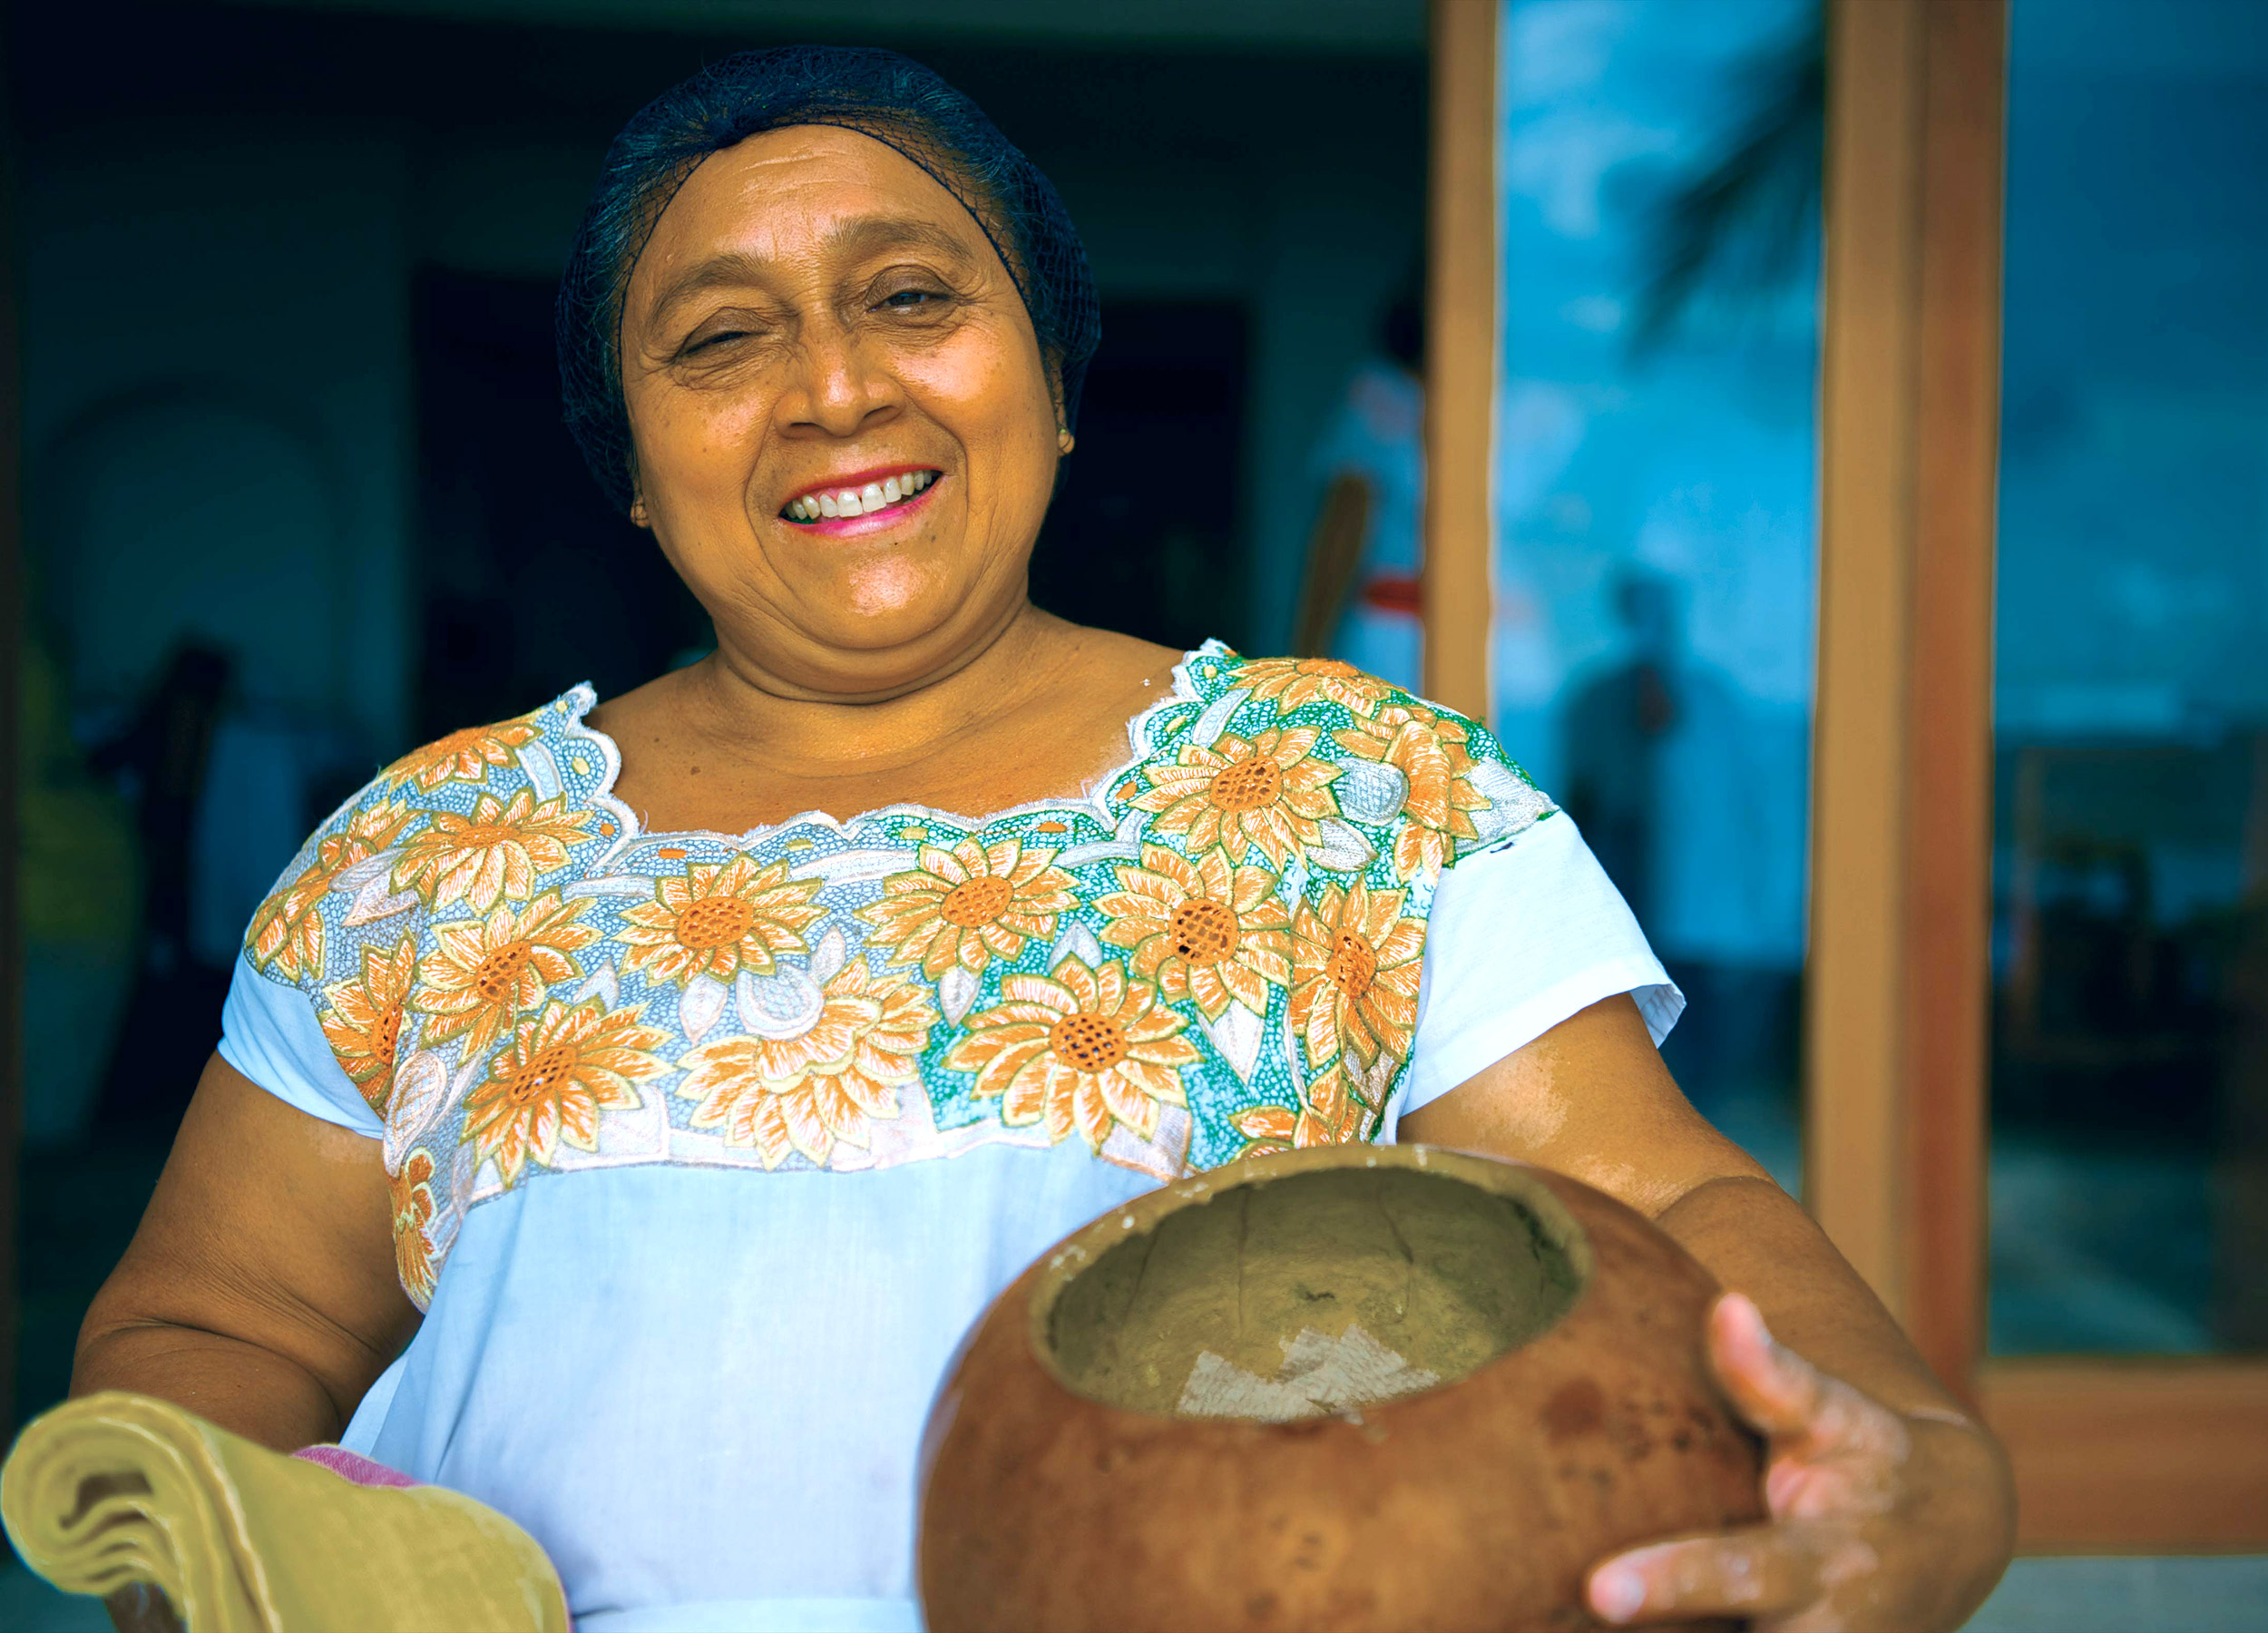 A smiling lady in a headscarf and blue dress holding a wooden pot at Belmond Maroma in Mexico